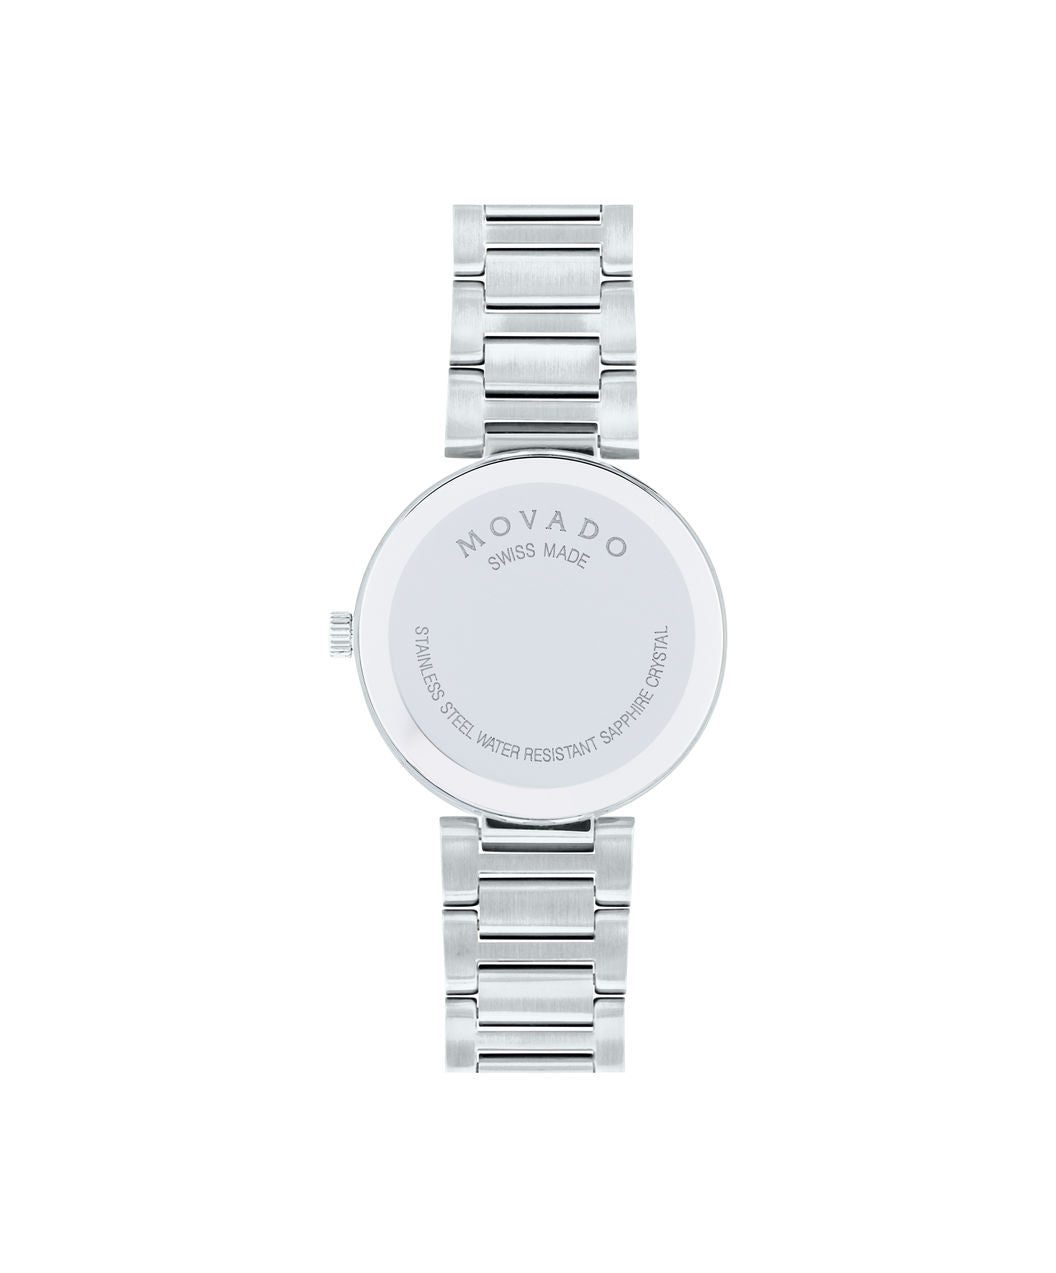 Movado Ladies Modern Classic - Two Tone with Black Dial